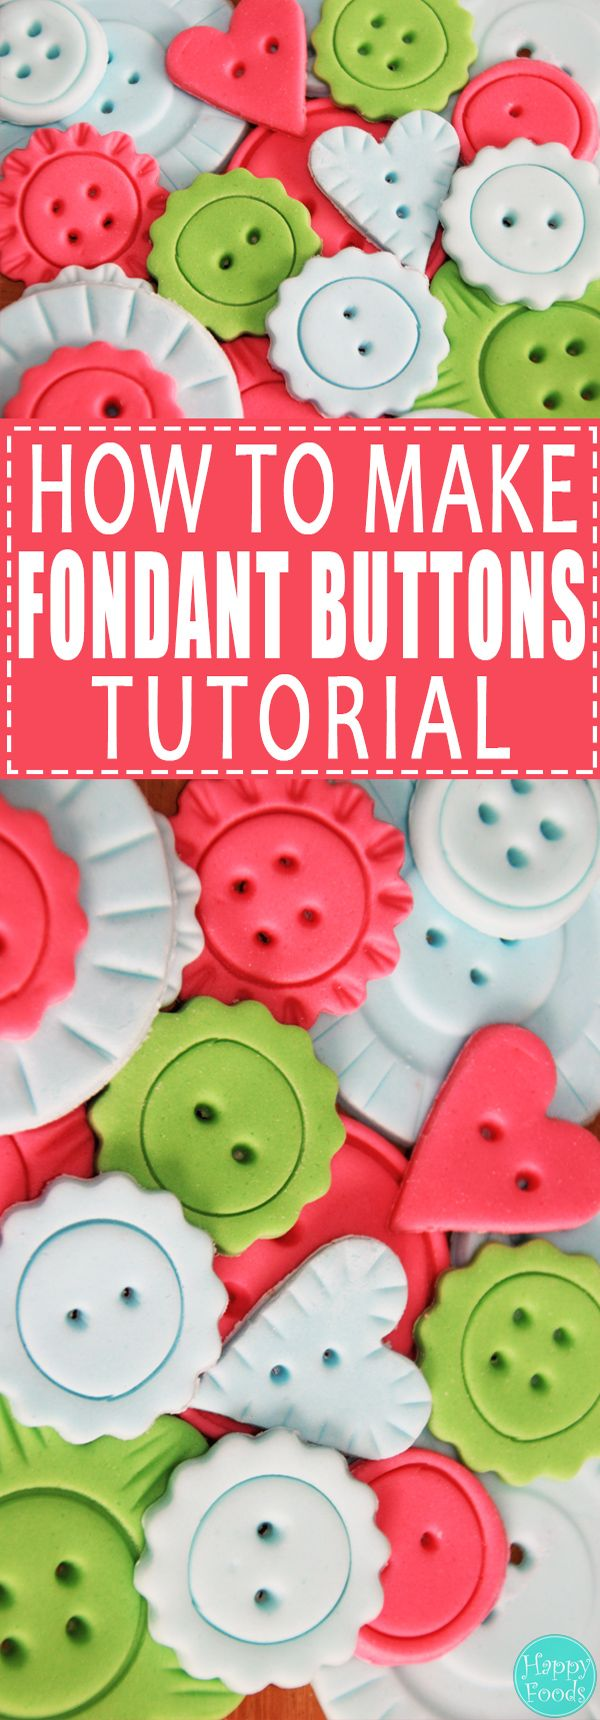 How to Make Fondant Buttons - Easy cake decorating tutorial! | happyfoodstube.com